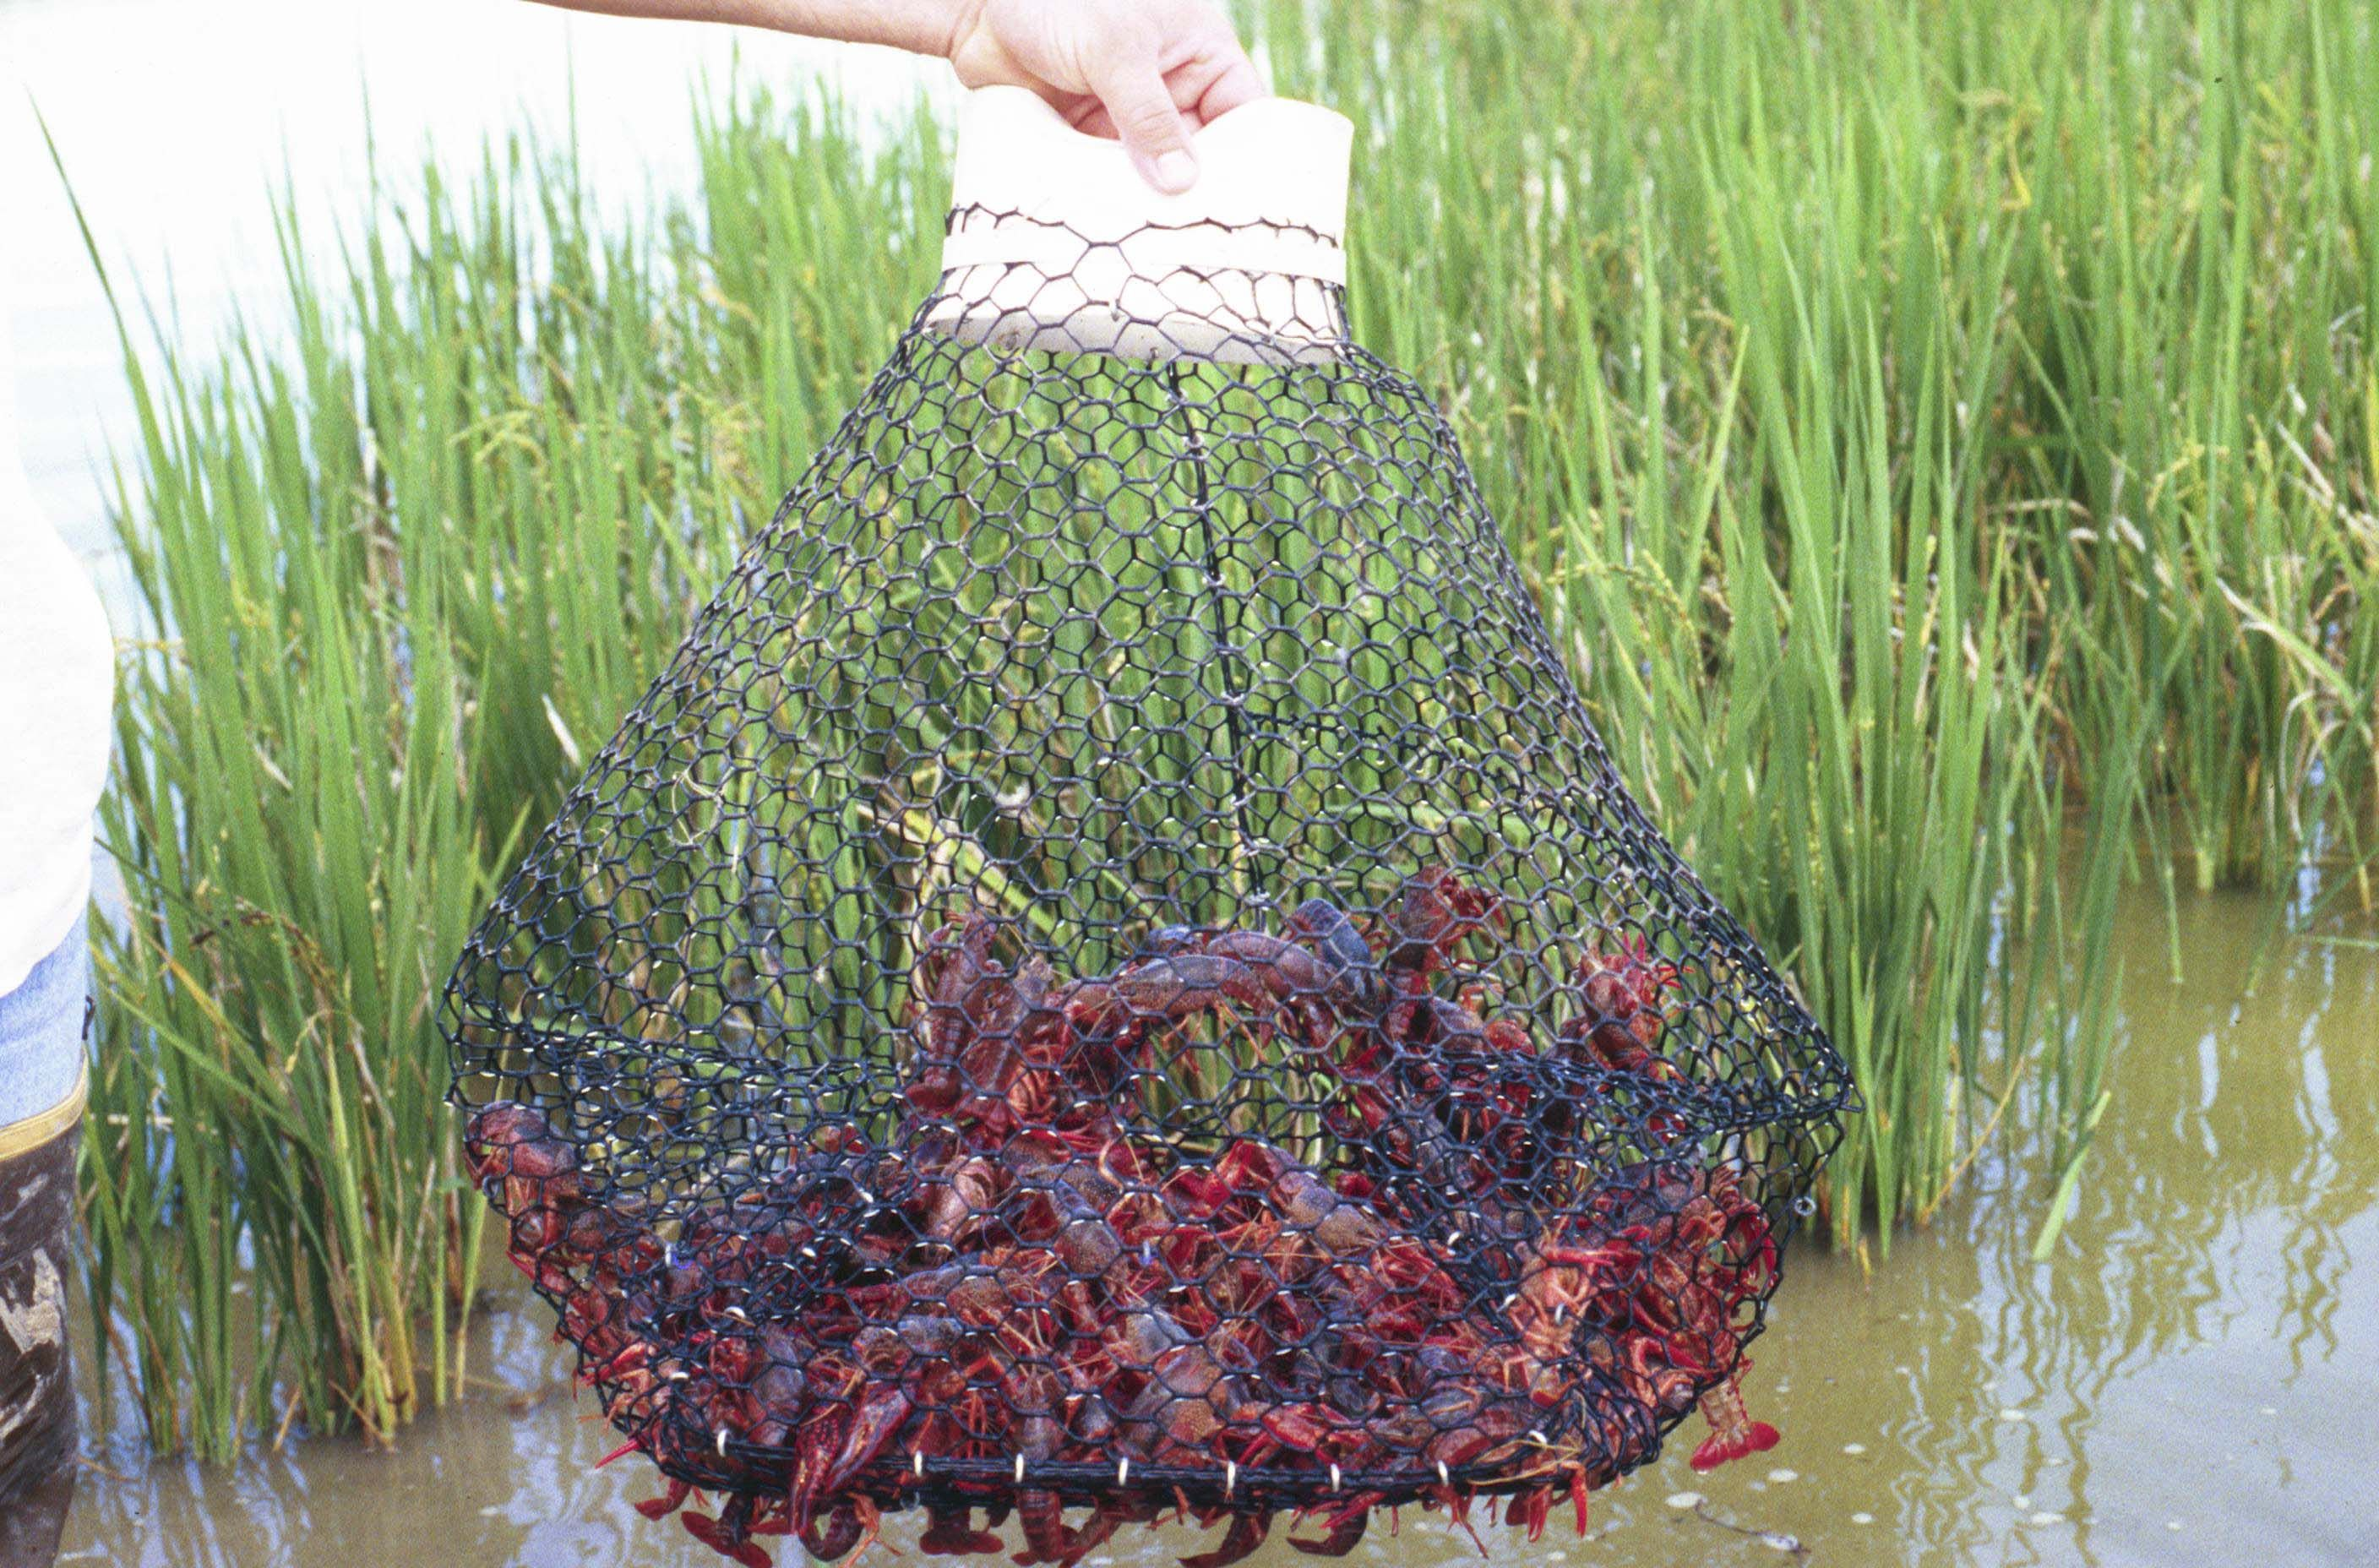 Making A Crayfish Trap That Works Making A Crayfish Trap Is One Of The  Easiest Things To Do In The World, And It Can Help To Ensure That You Have  An